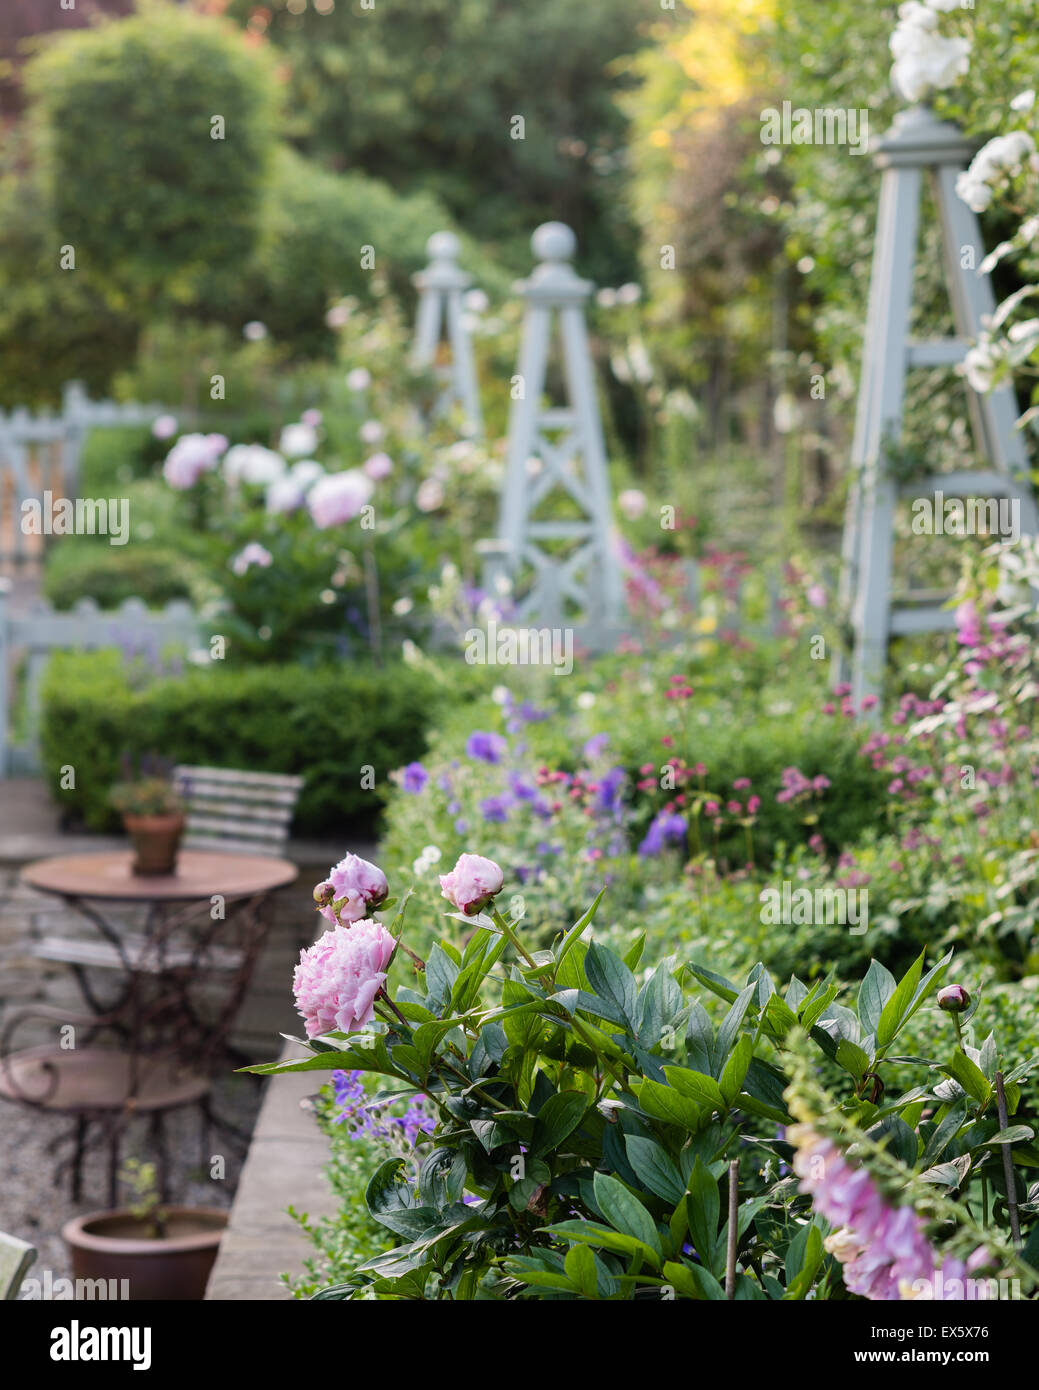 Peonies in country garden with plant stands - Stock Image